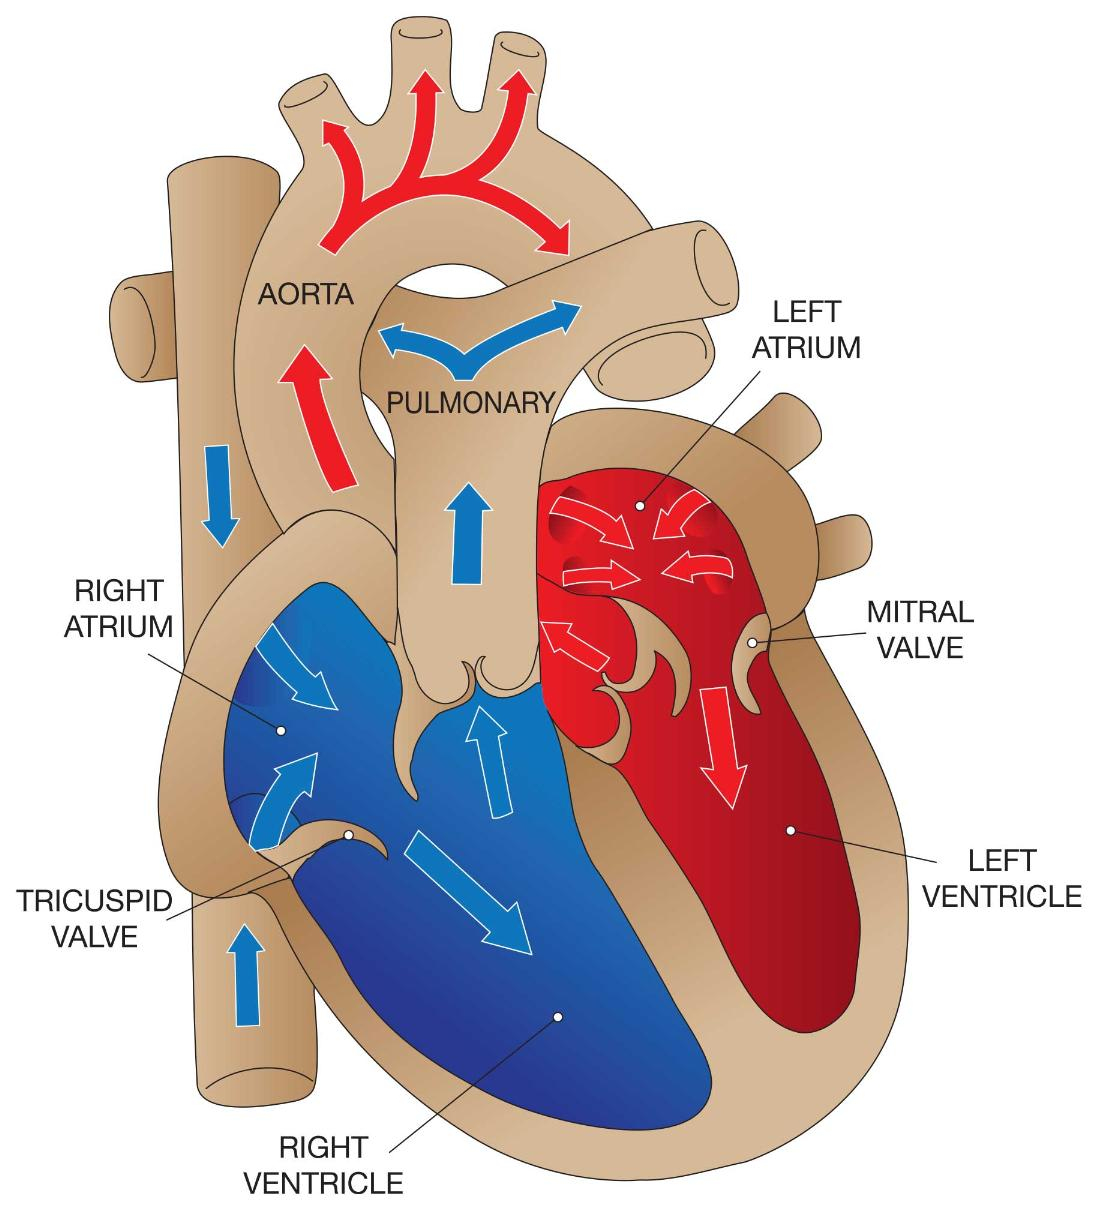 Overview of Valvular Disorders | The Heart & Diving - DAN Health ...